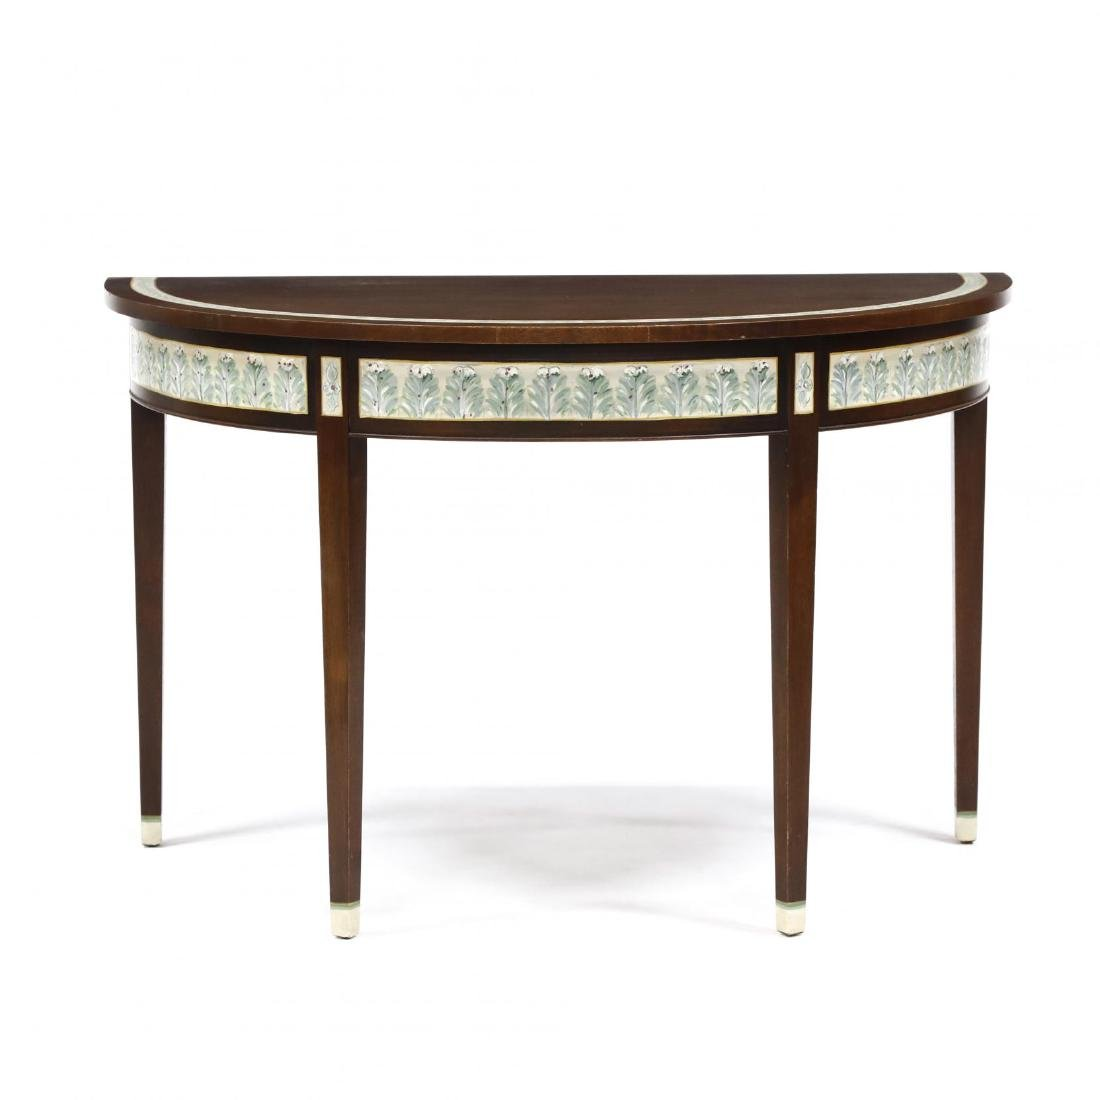 Contemporary Paint Decorated Demilune Table